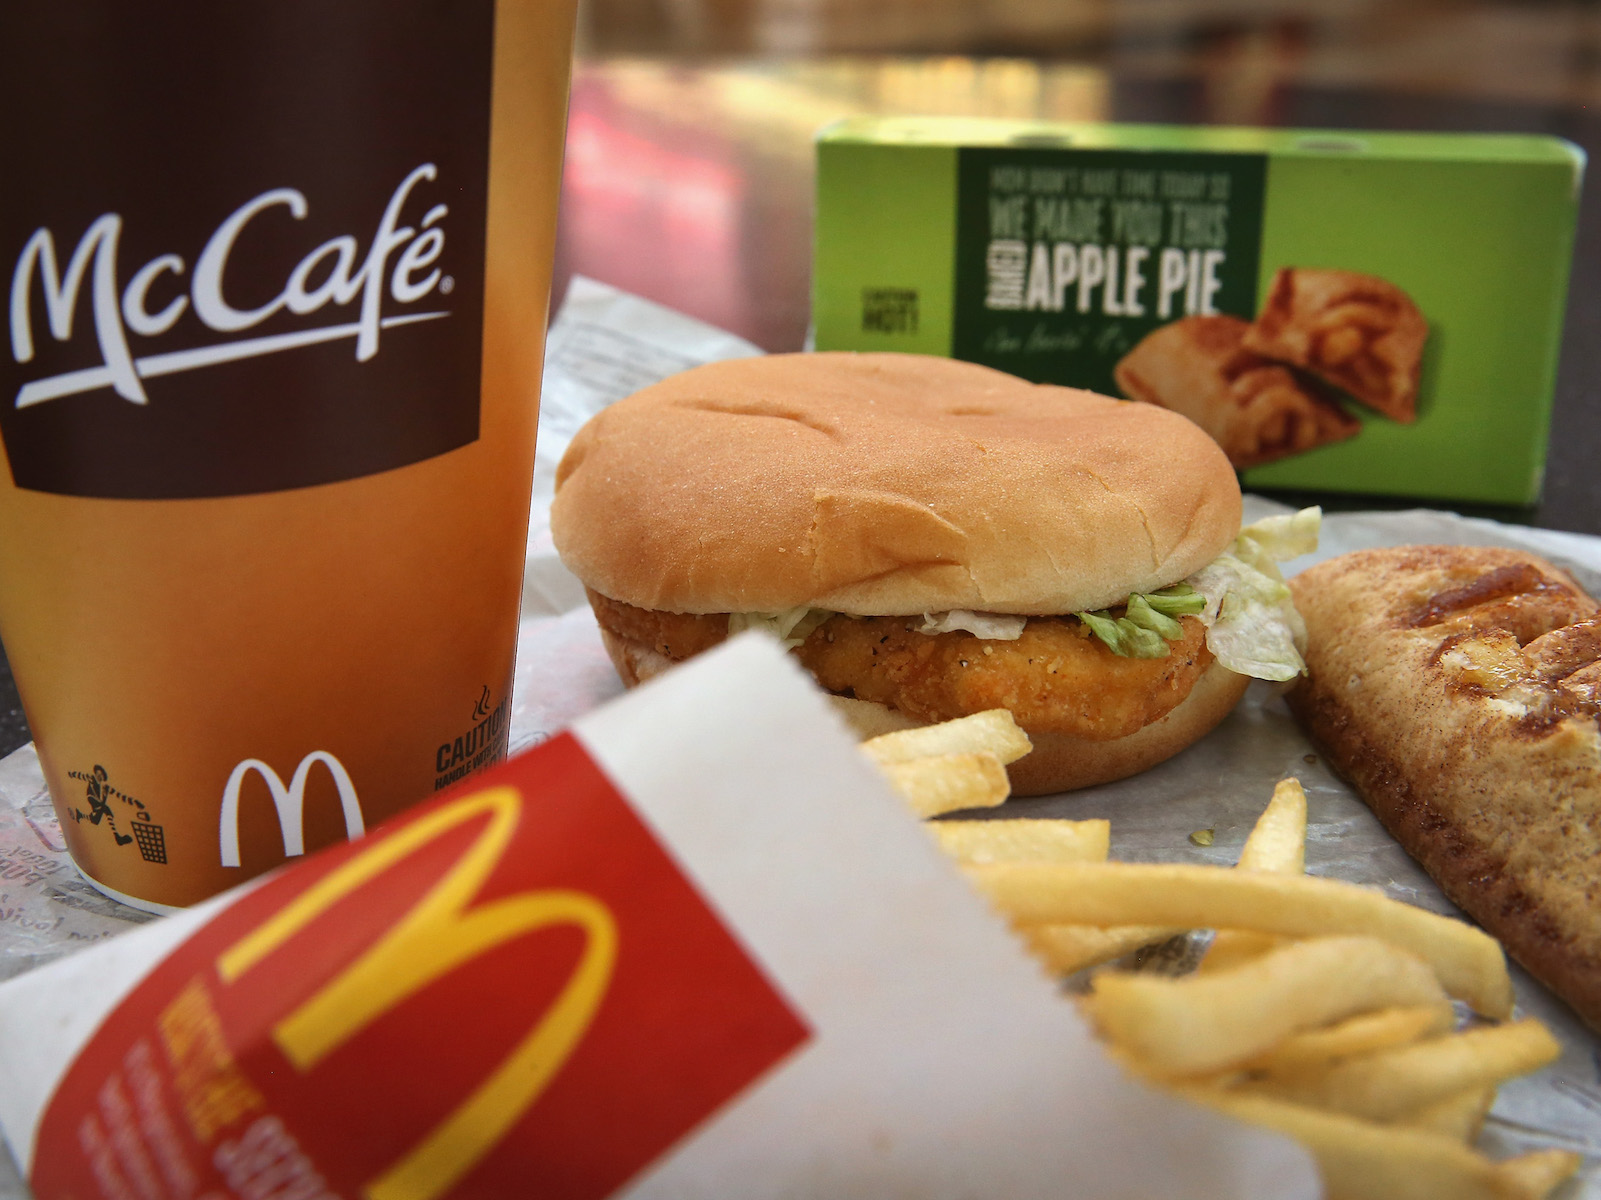 McDonald's Dollar Menu Varies Significantly Across the Country